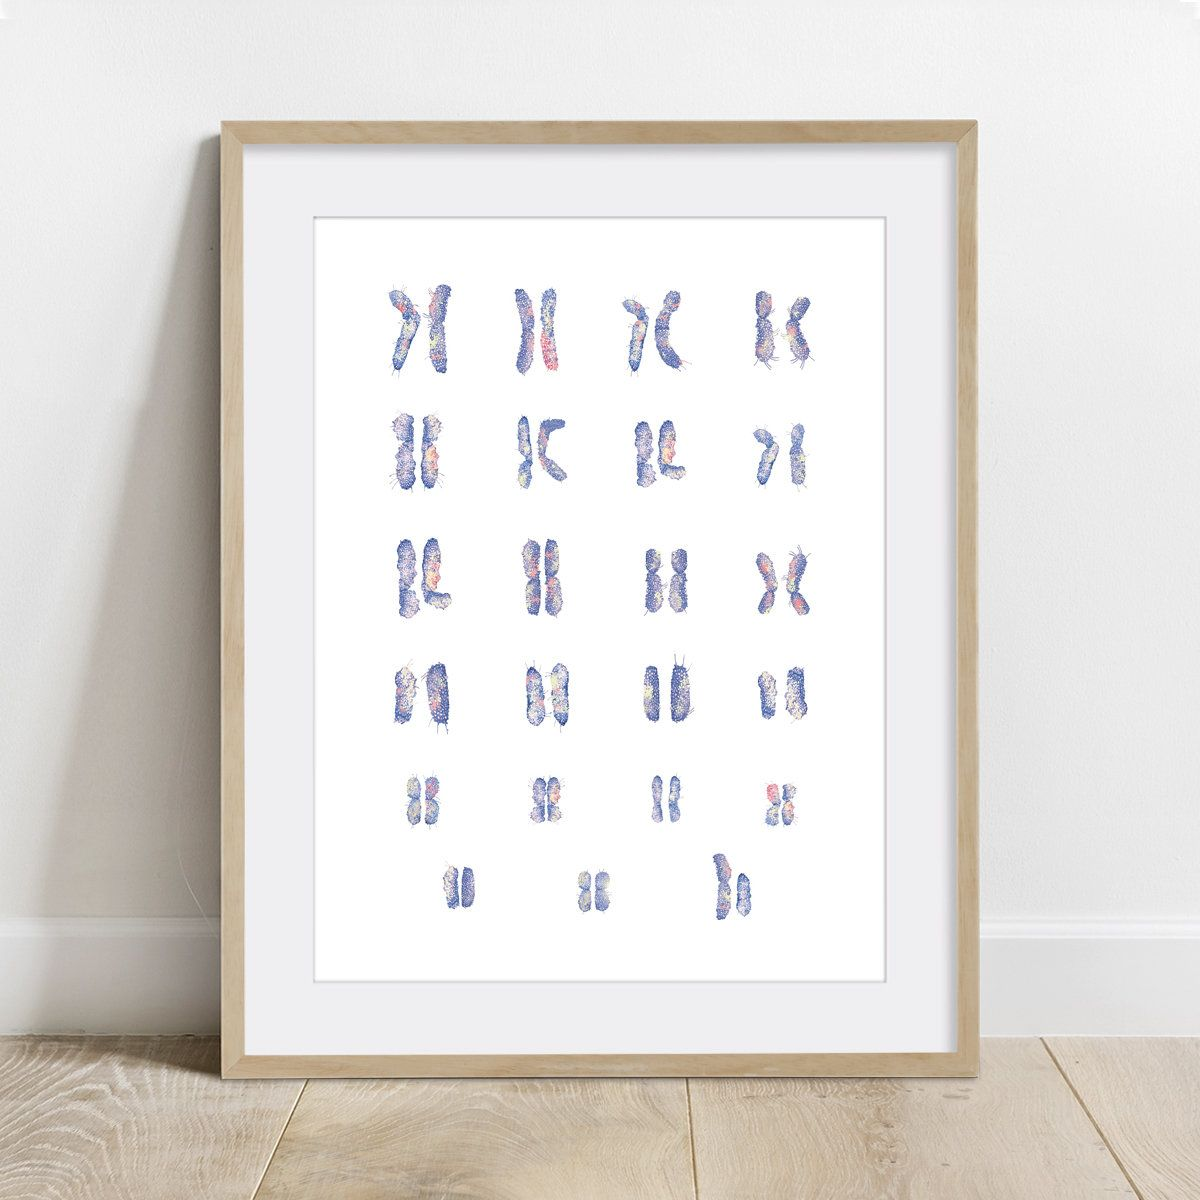 Male Chromosomes Karyotype Science Art Biology Print Dna Genomics Poster Wall Decor 5 X 7 In 8 X 10 In 11 X 14 In 12 X 16 In In 2020 Science Art Poster Wall Art